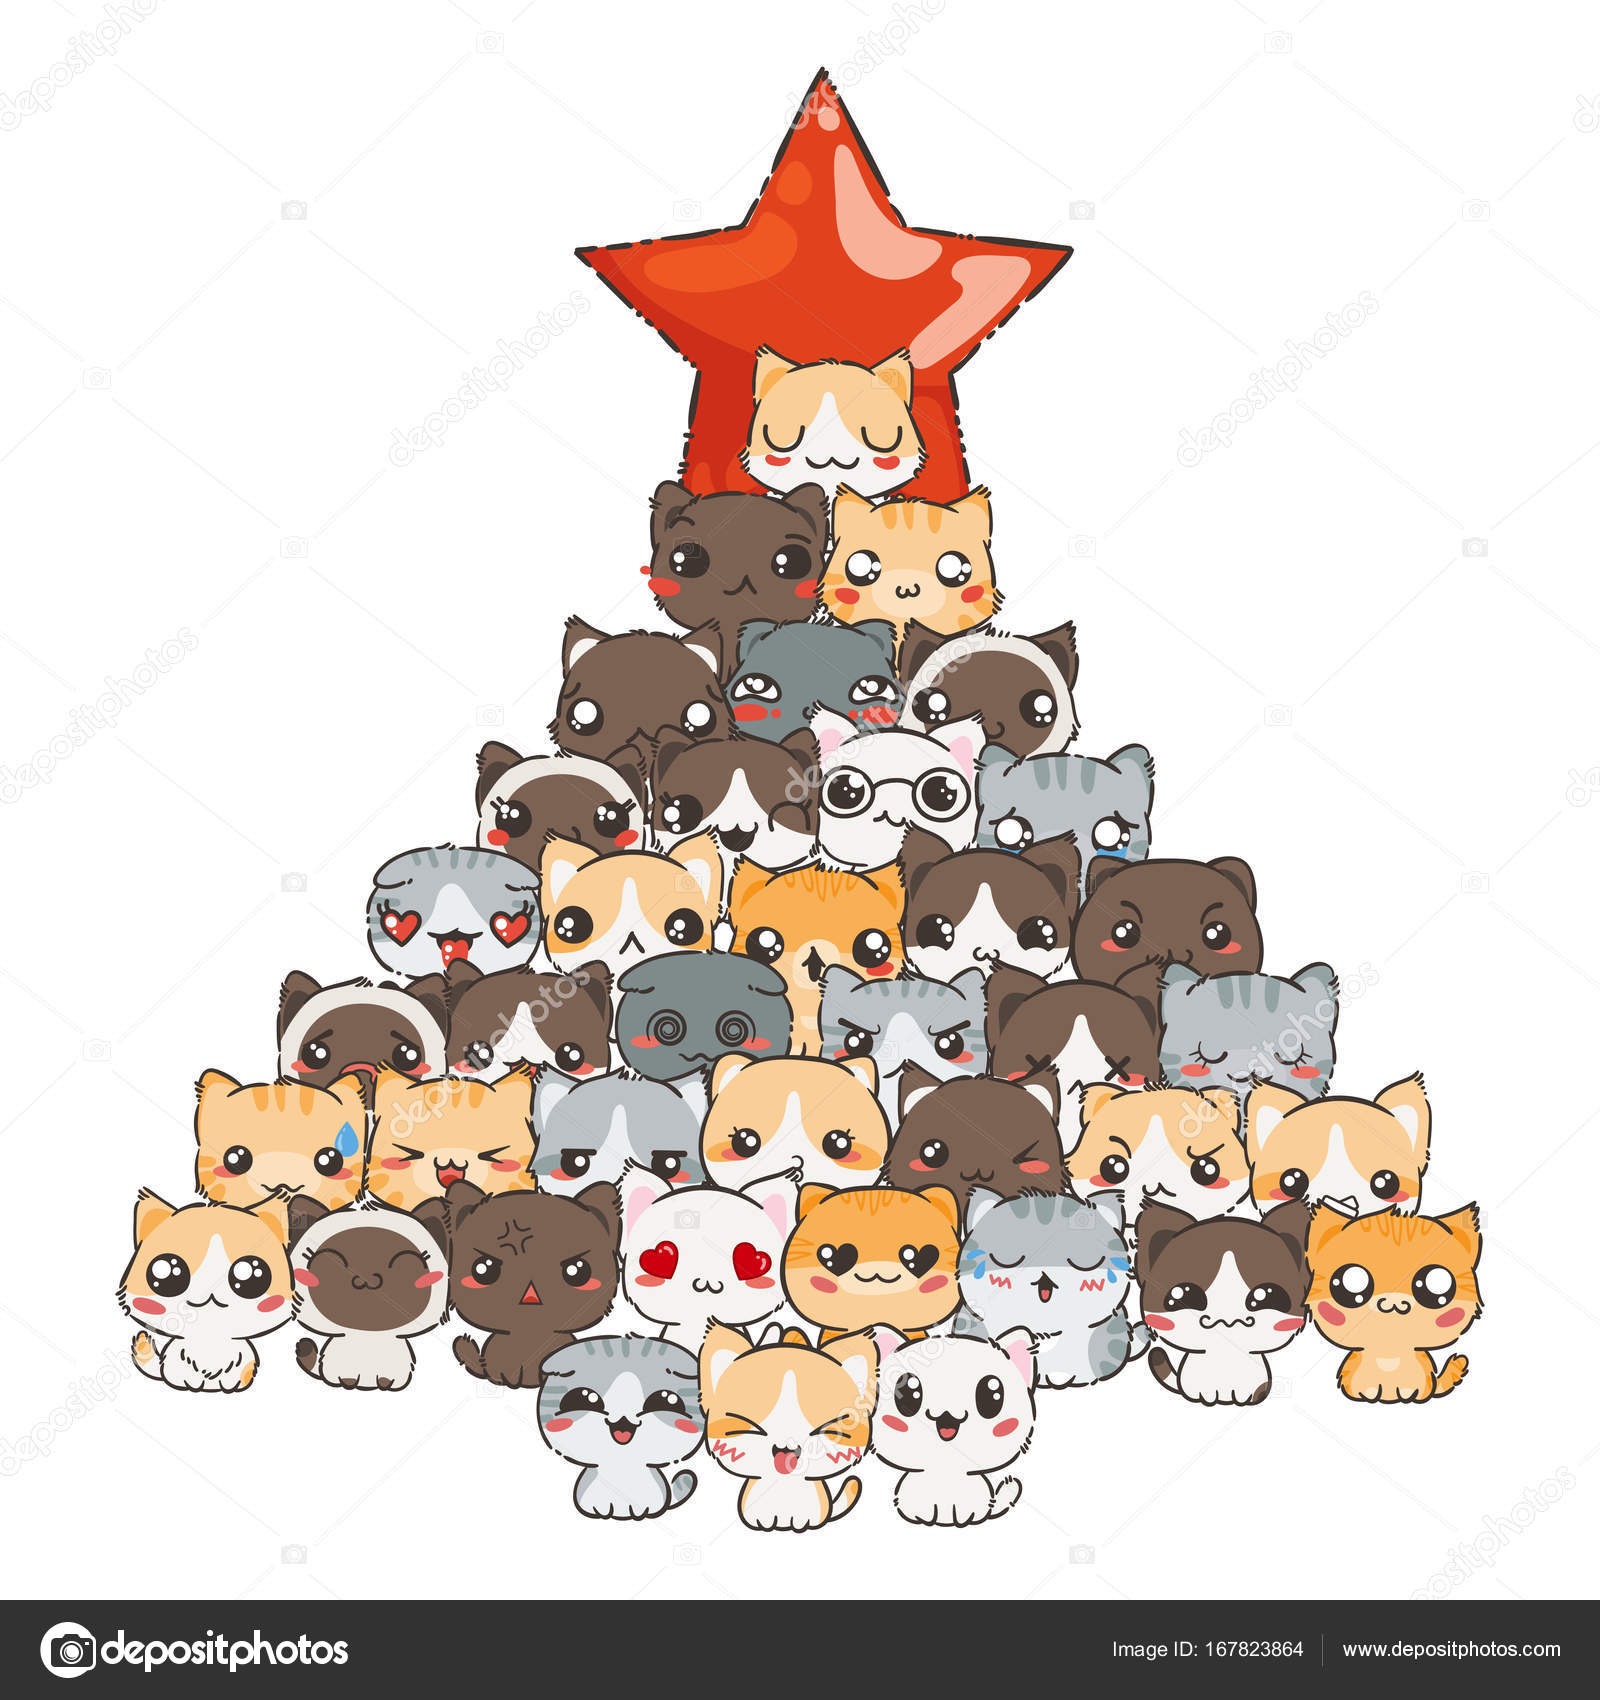 Pictures Cute Cartoon Cat Cute Cartoon Cats And Dogs Stock Vector C Drekhann 167823864